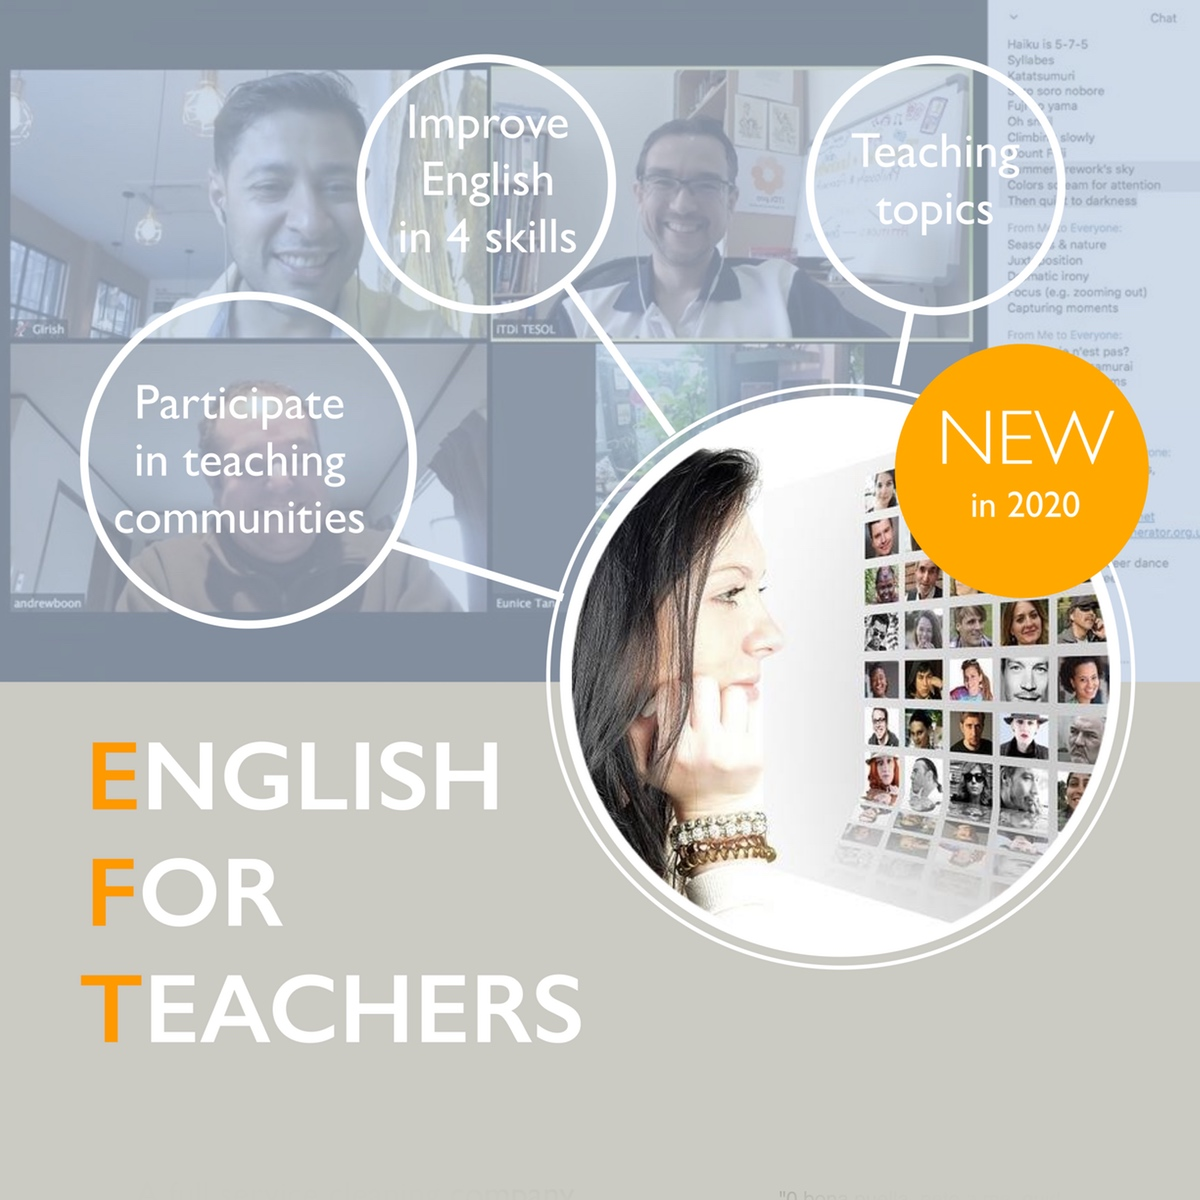 English for Teachers course